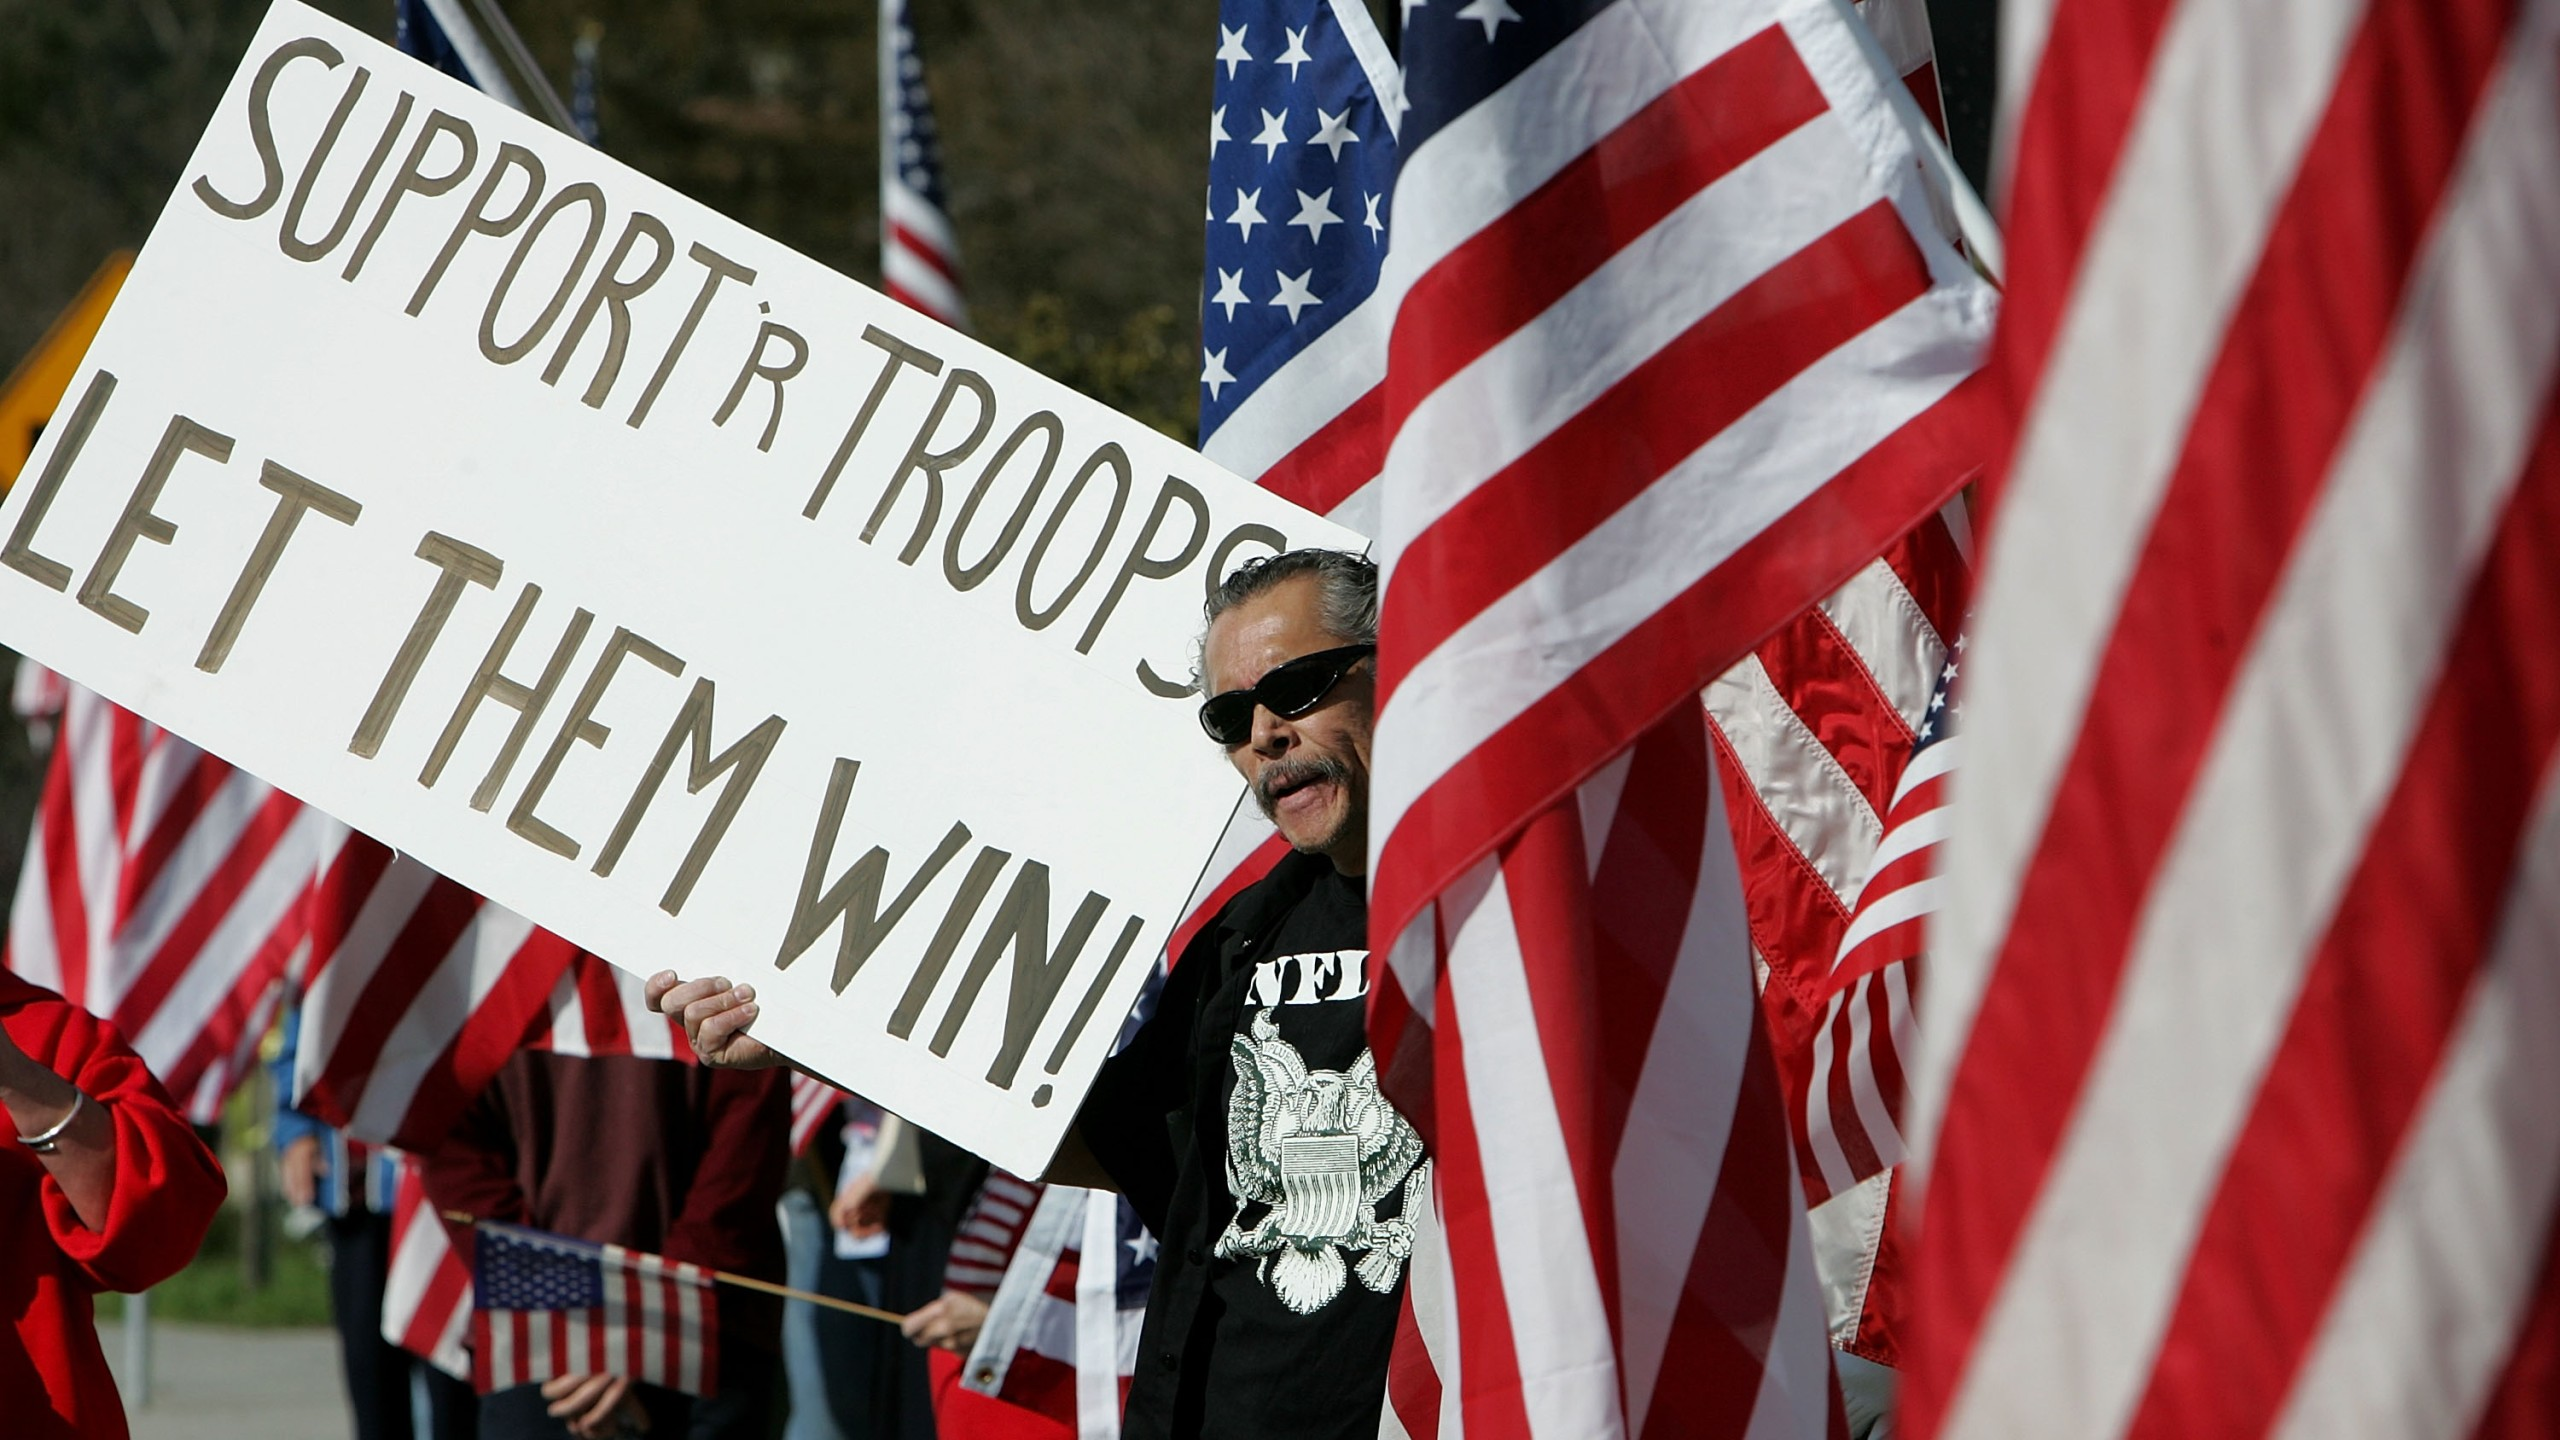 A pro-war demonstrator holds a sign as he participates in a rally staged by Move America Forward at the site of a hillside memorial honoring U.S. troops killed in Iraq March 8, 2007 in Lafayette, California. (Credit: Justin Sullivan/Getty Images)